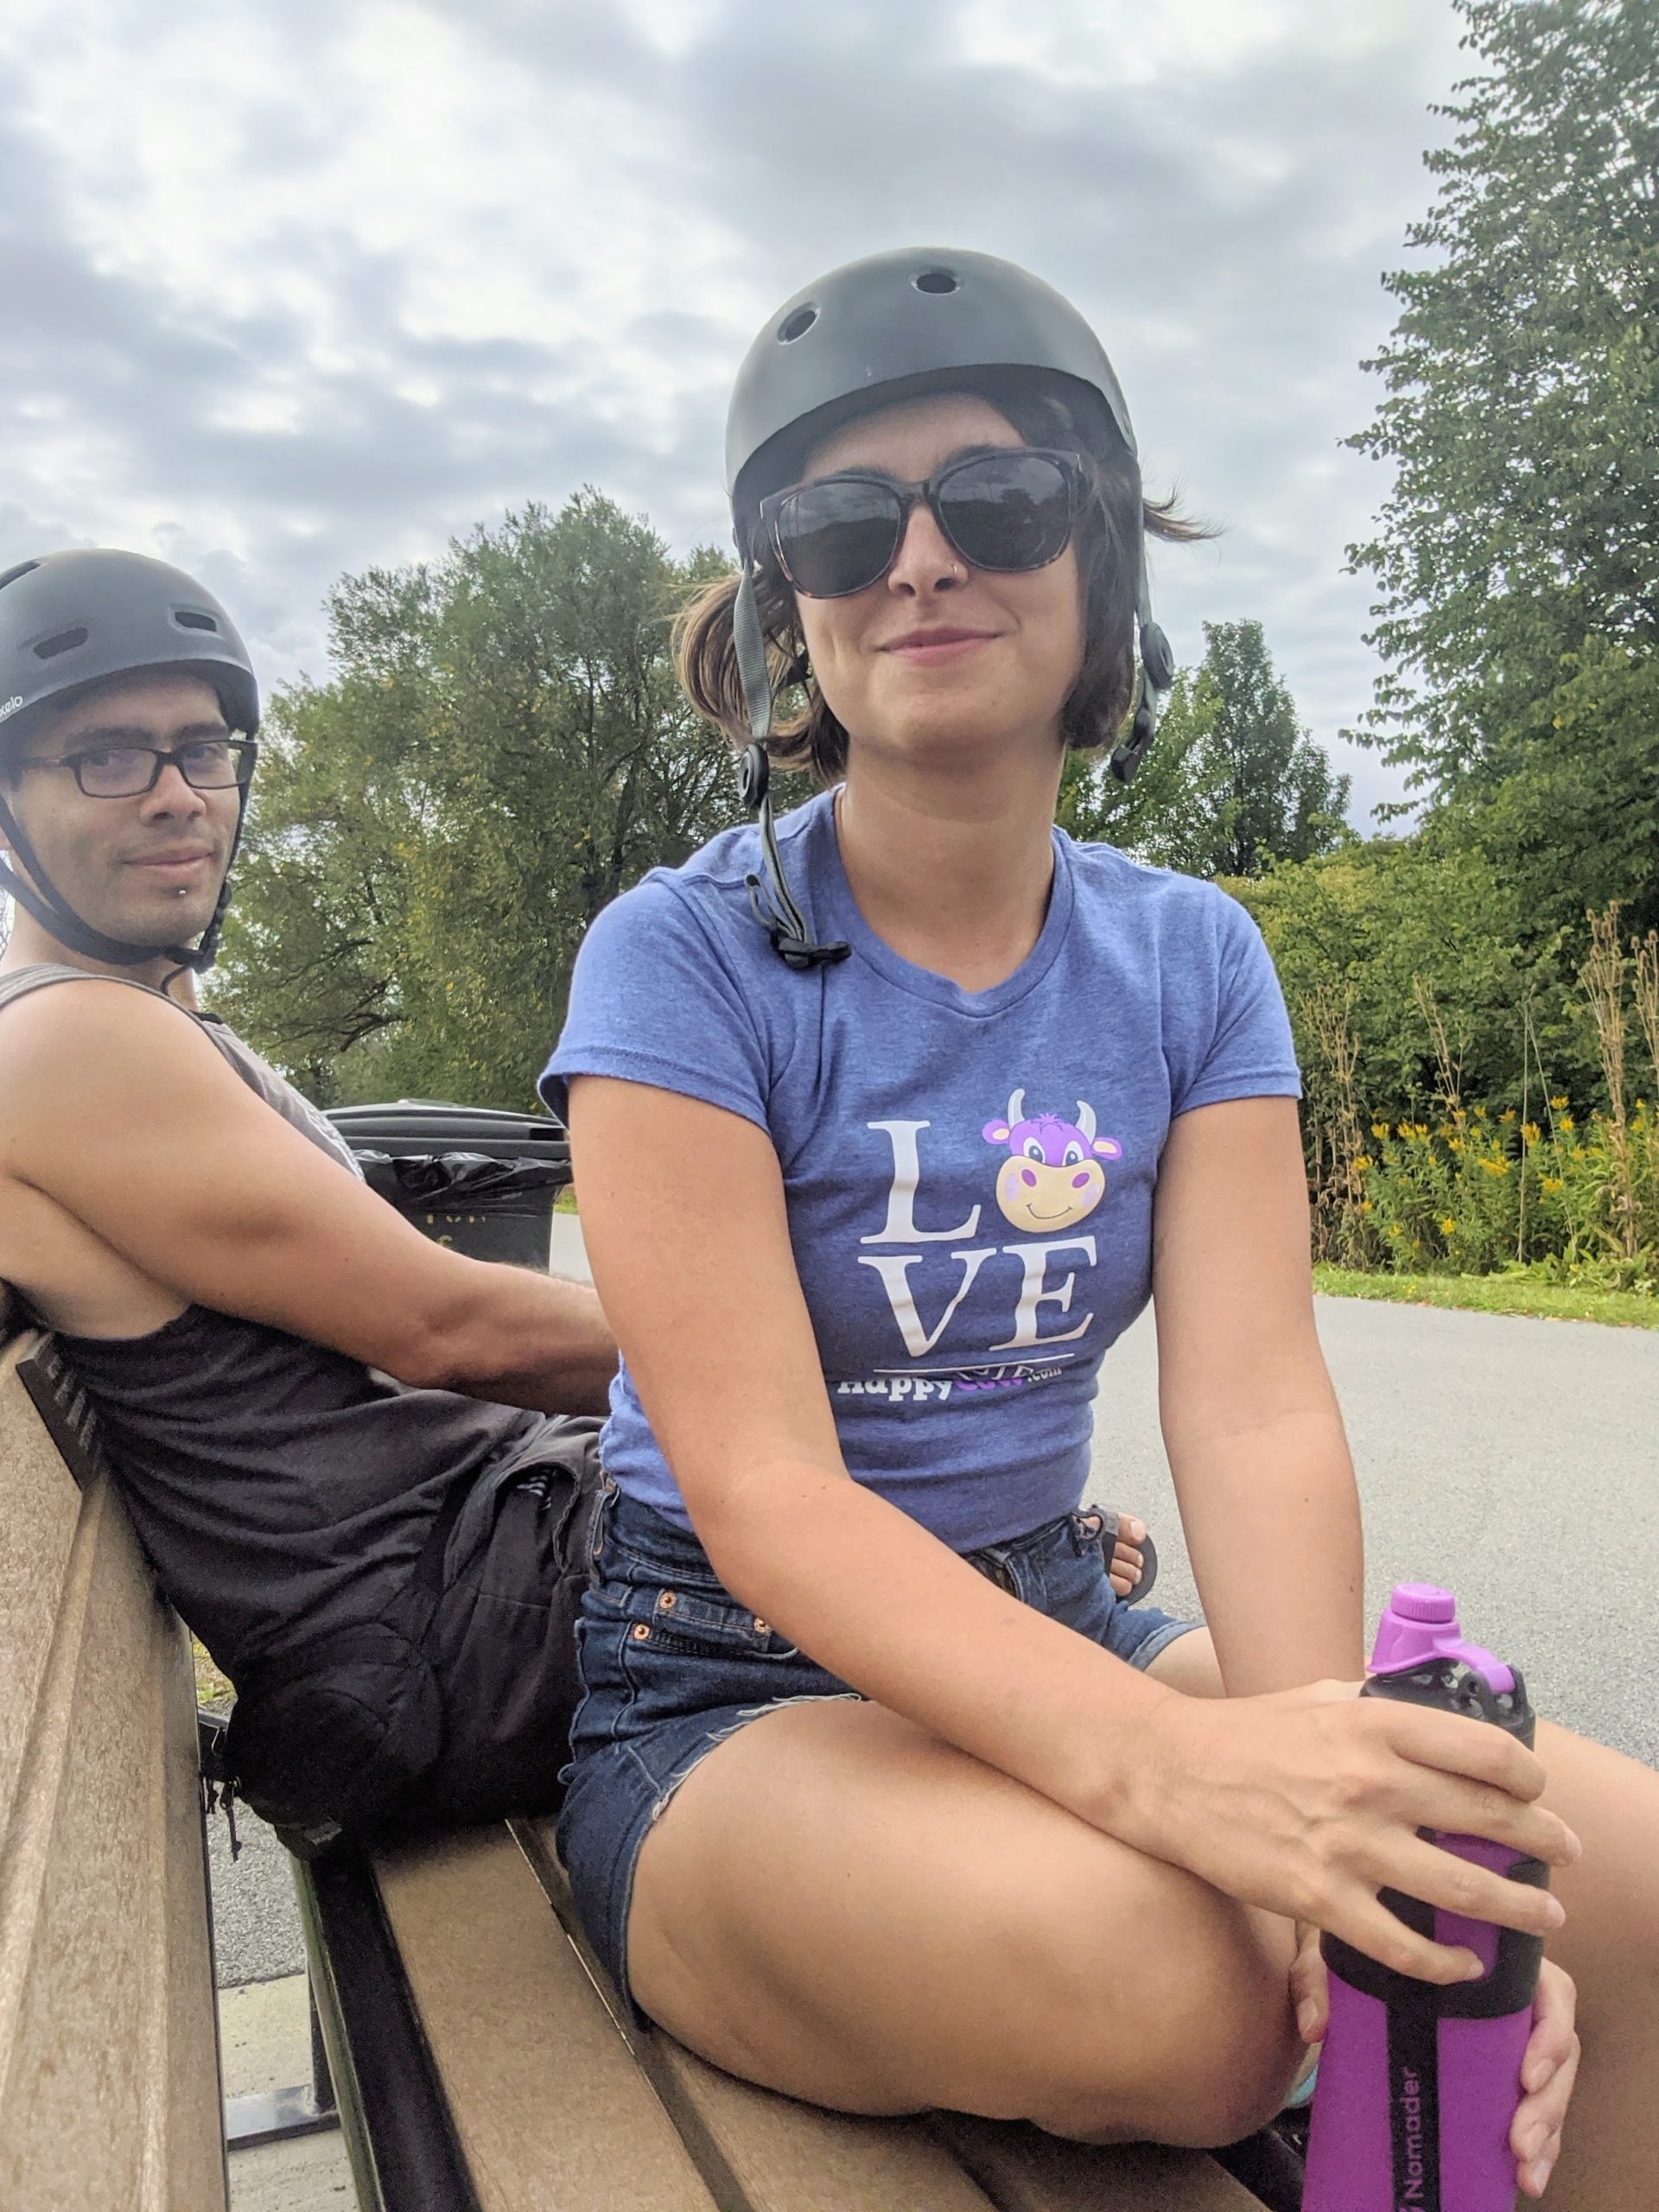 Sam and Veren sitting on a bench with bike helmets on and a purple water bottle in Sam's hands